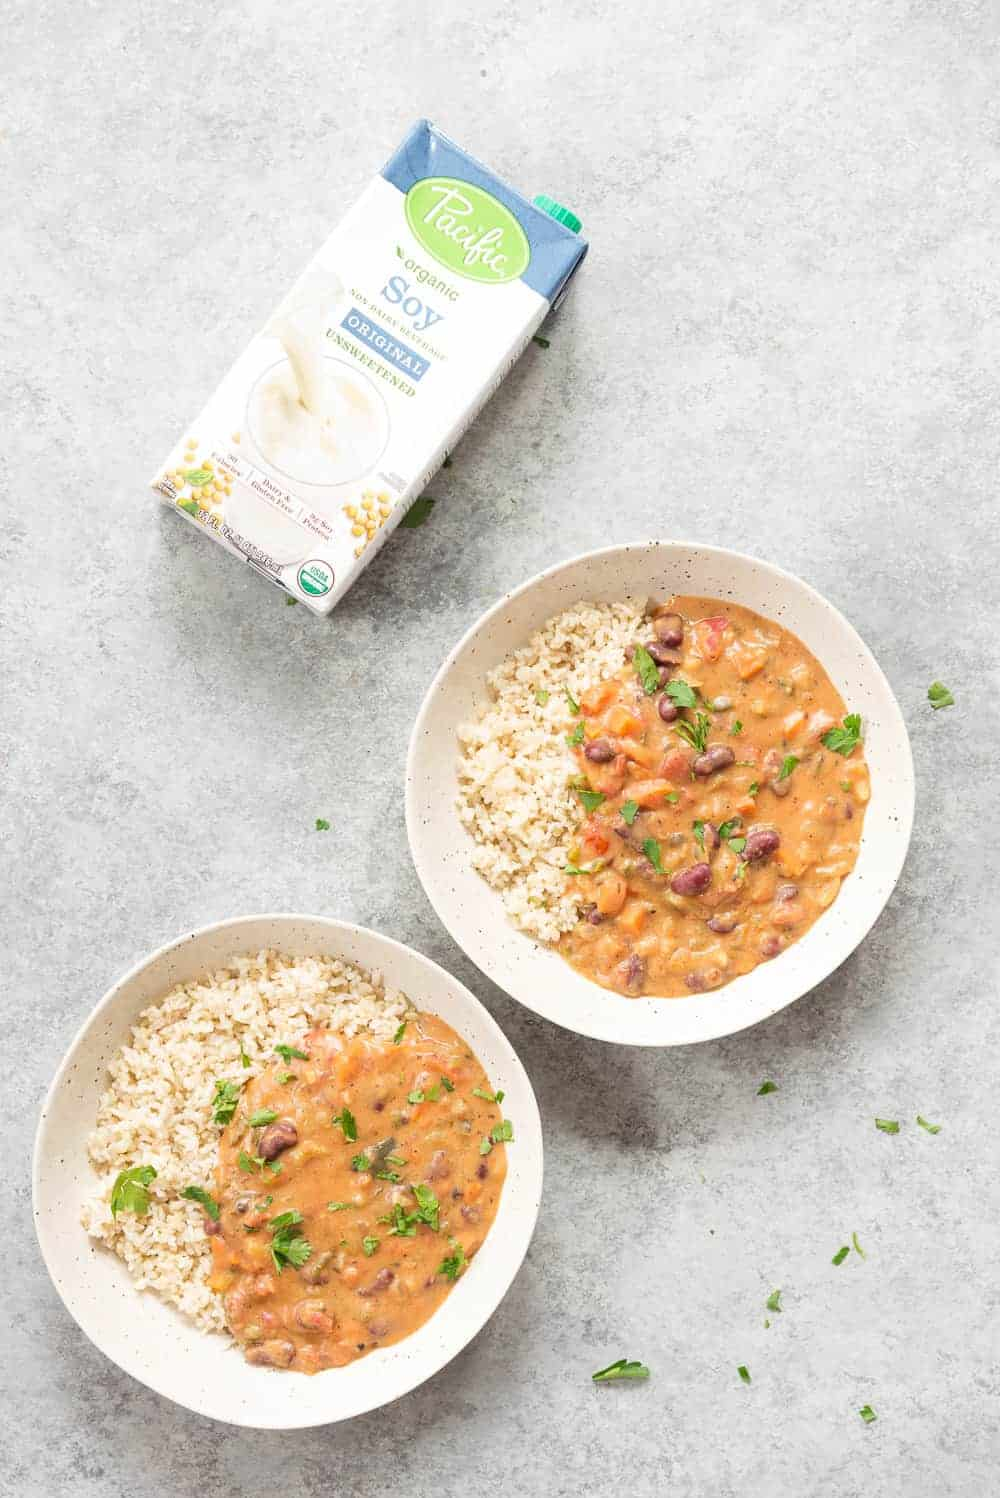 vegan gumbo made with soy milk